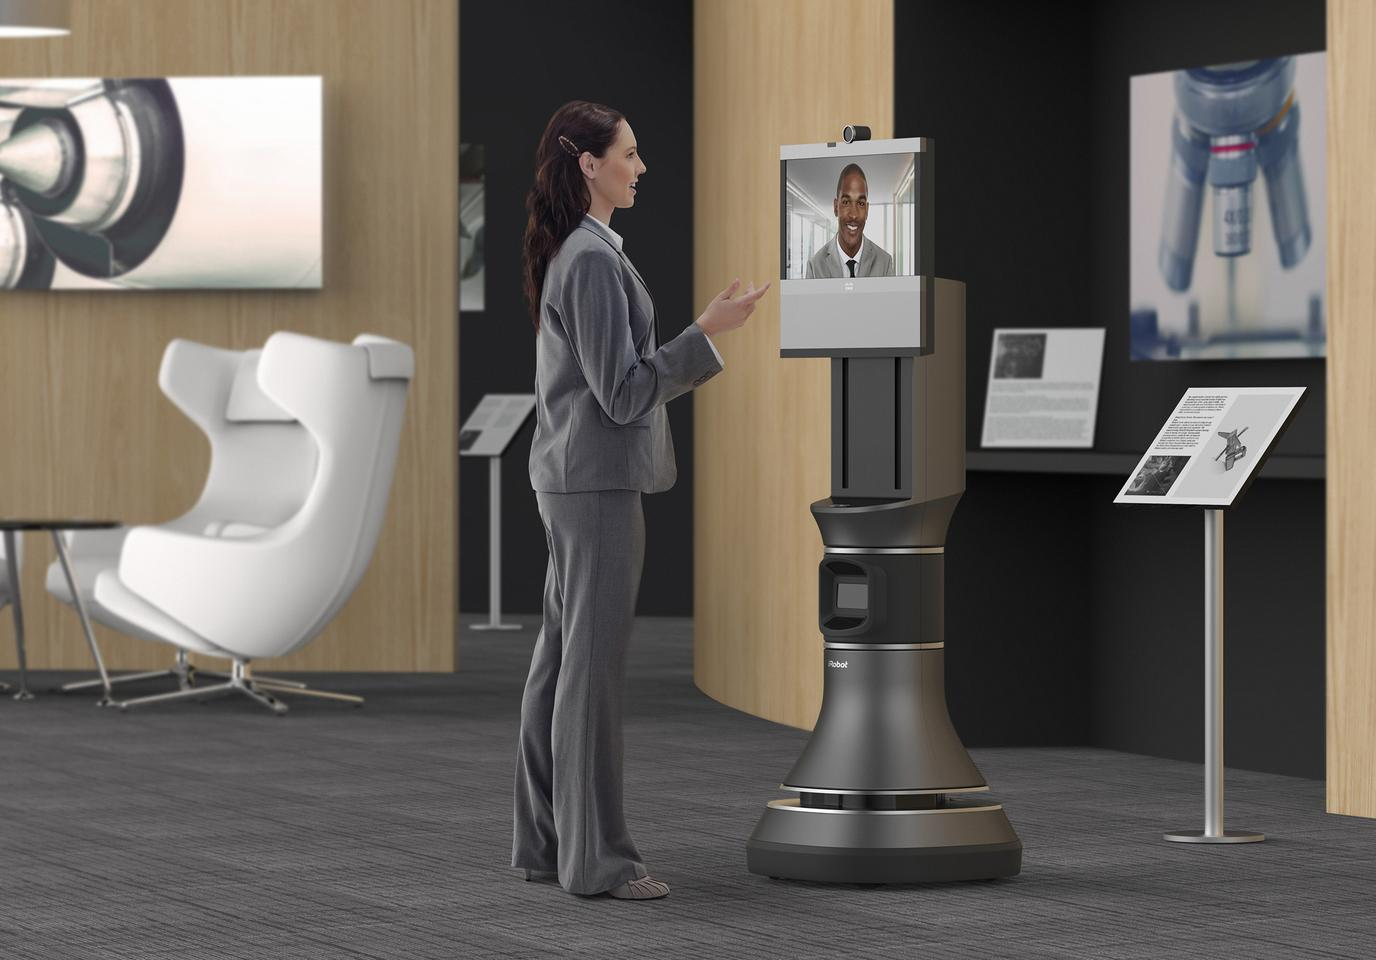 The iRobot Ava 500 is designed for natural interactions